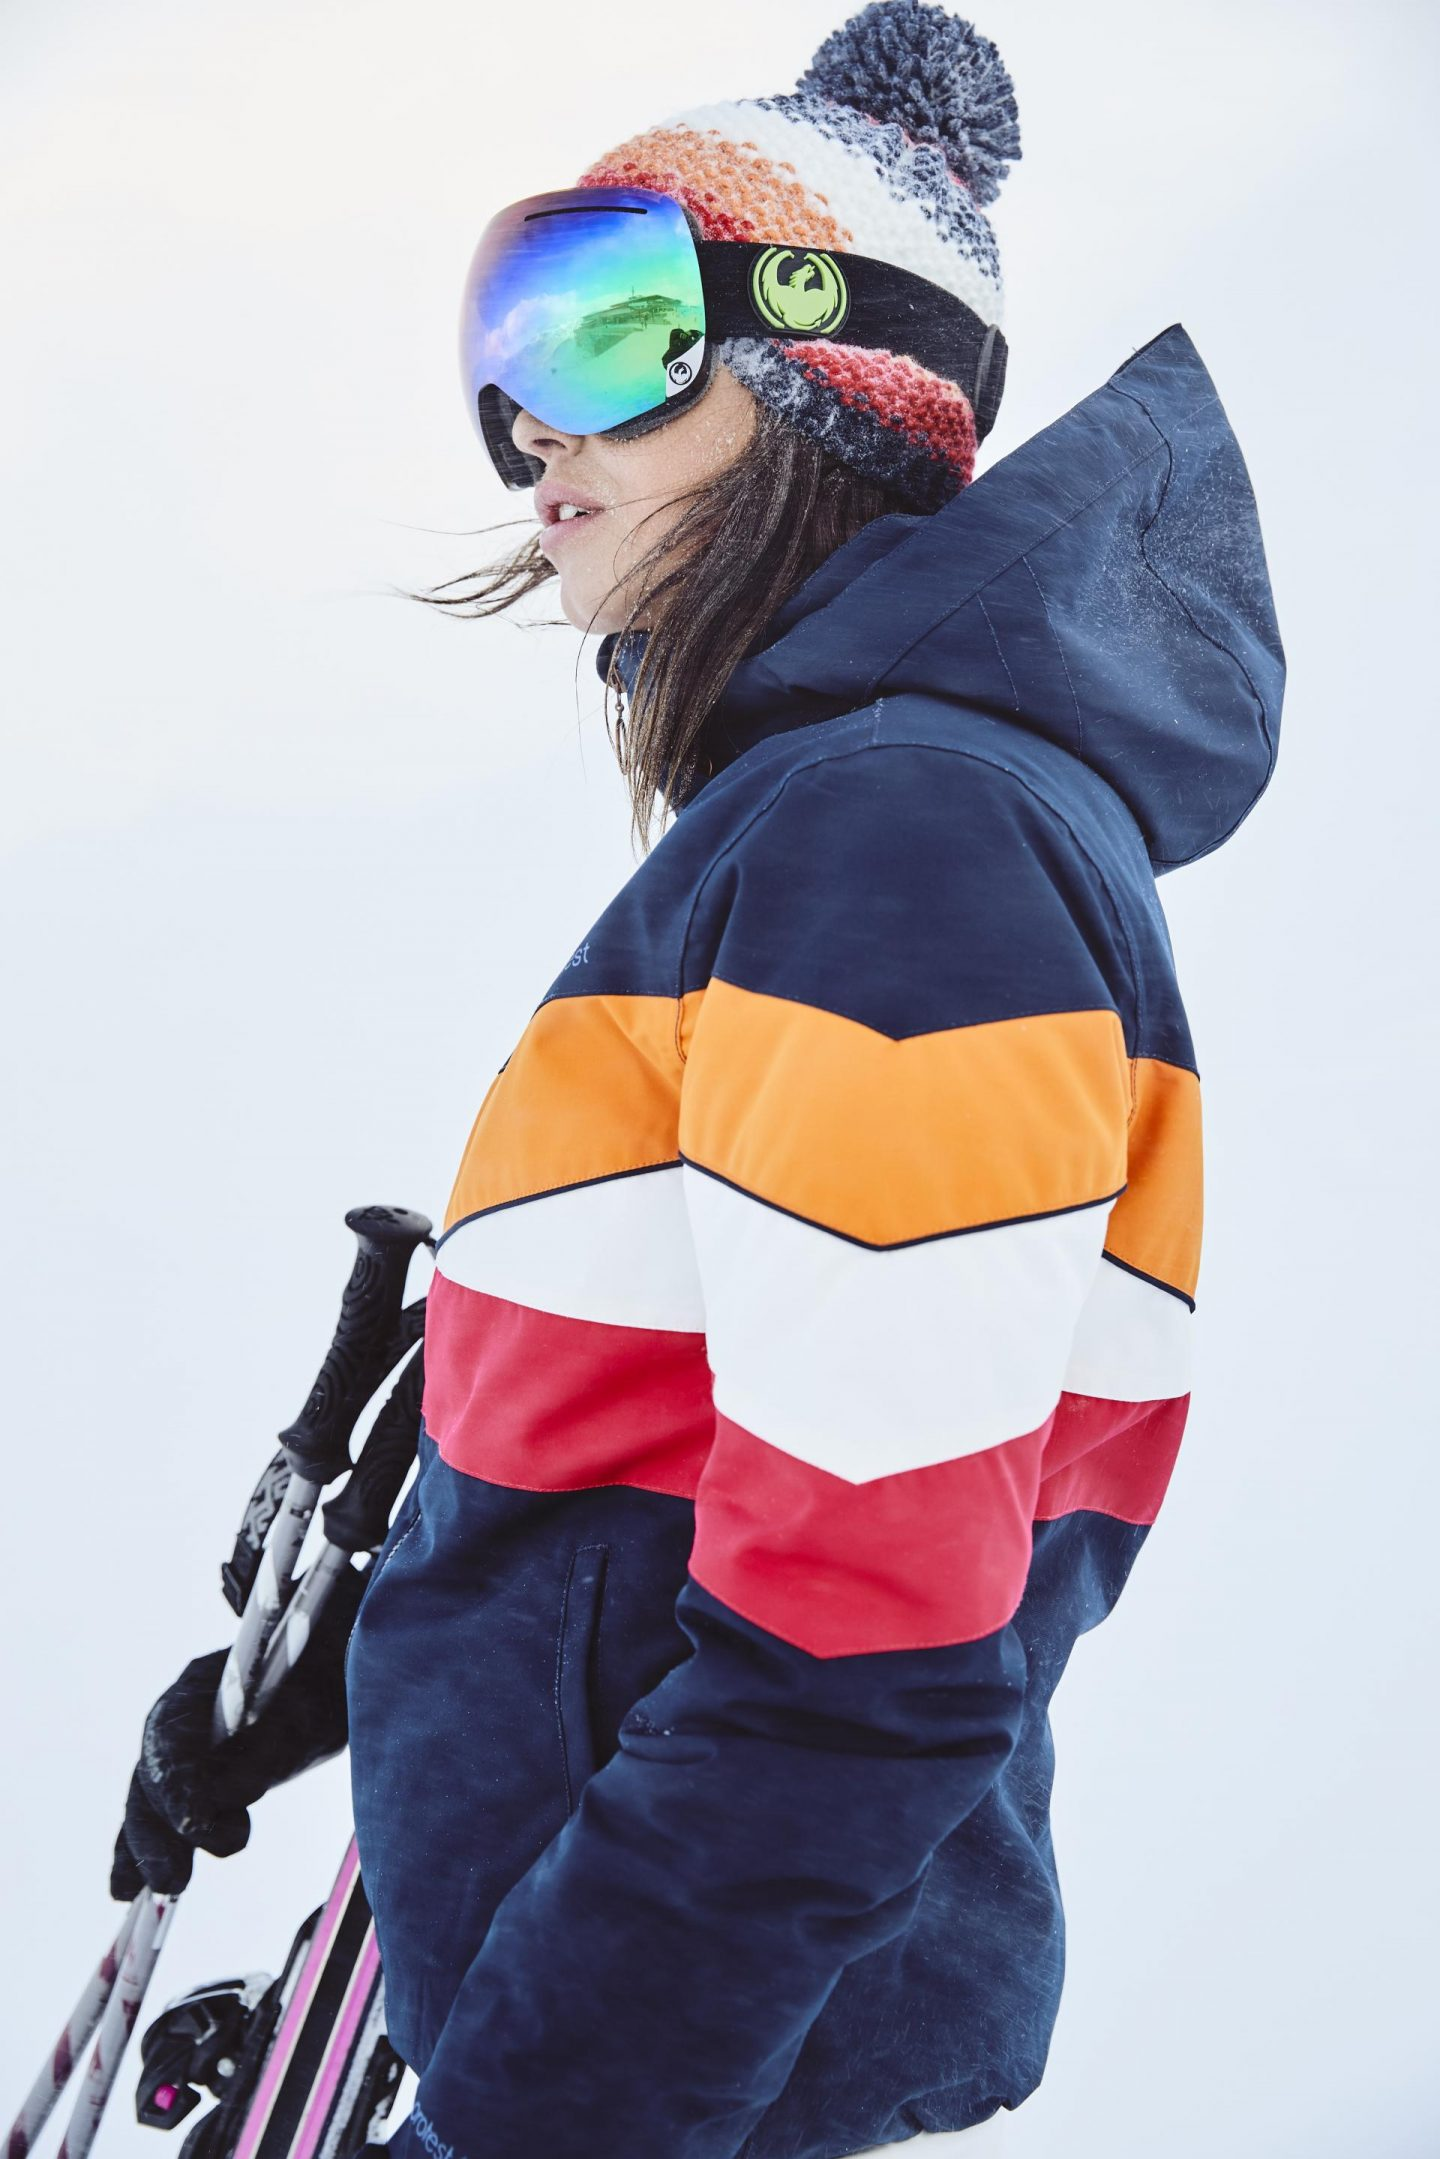 Best Women's Ski Gear | Best snowsports clothes for 2020 reviewed by The Girl Outdoors, Sian Lewis, for The Independent